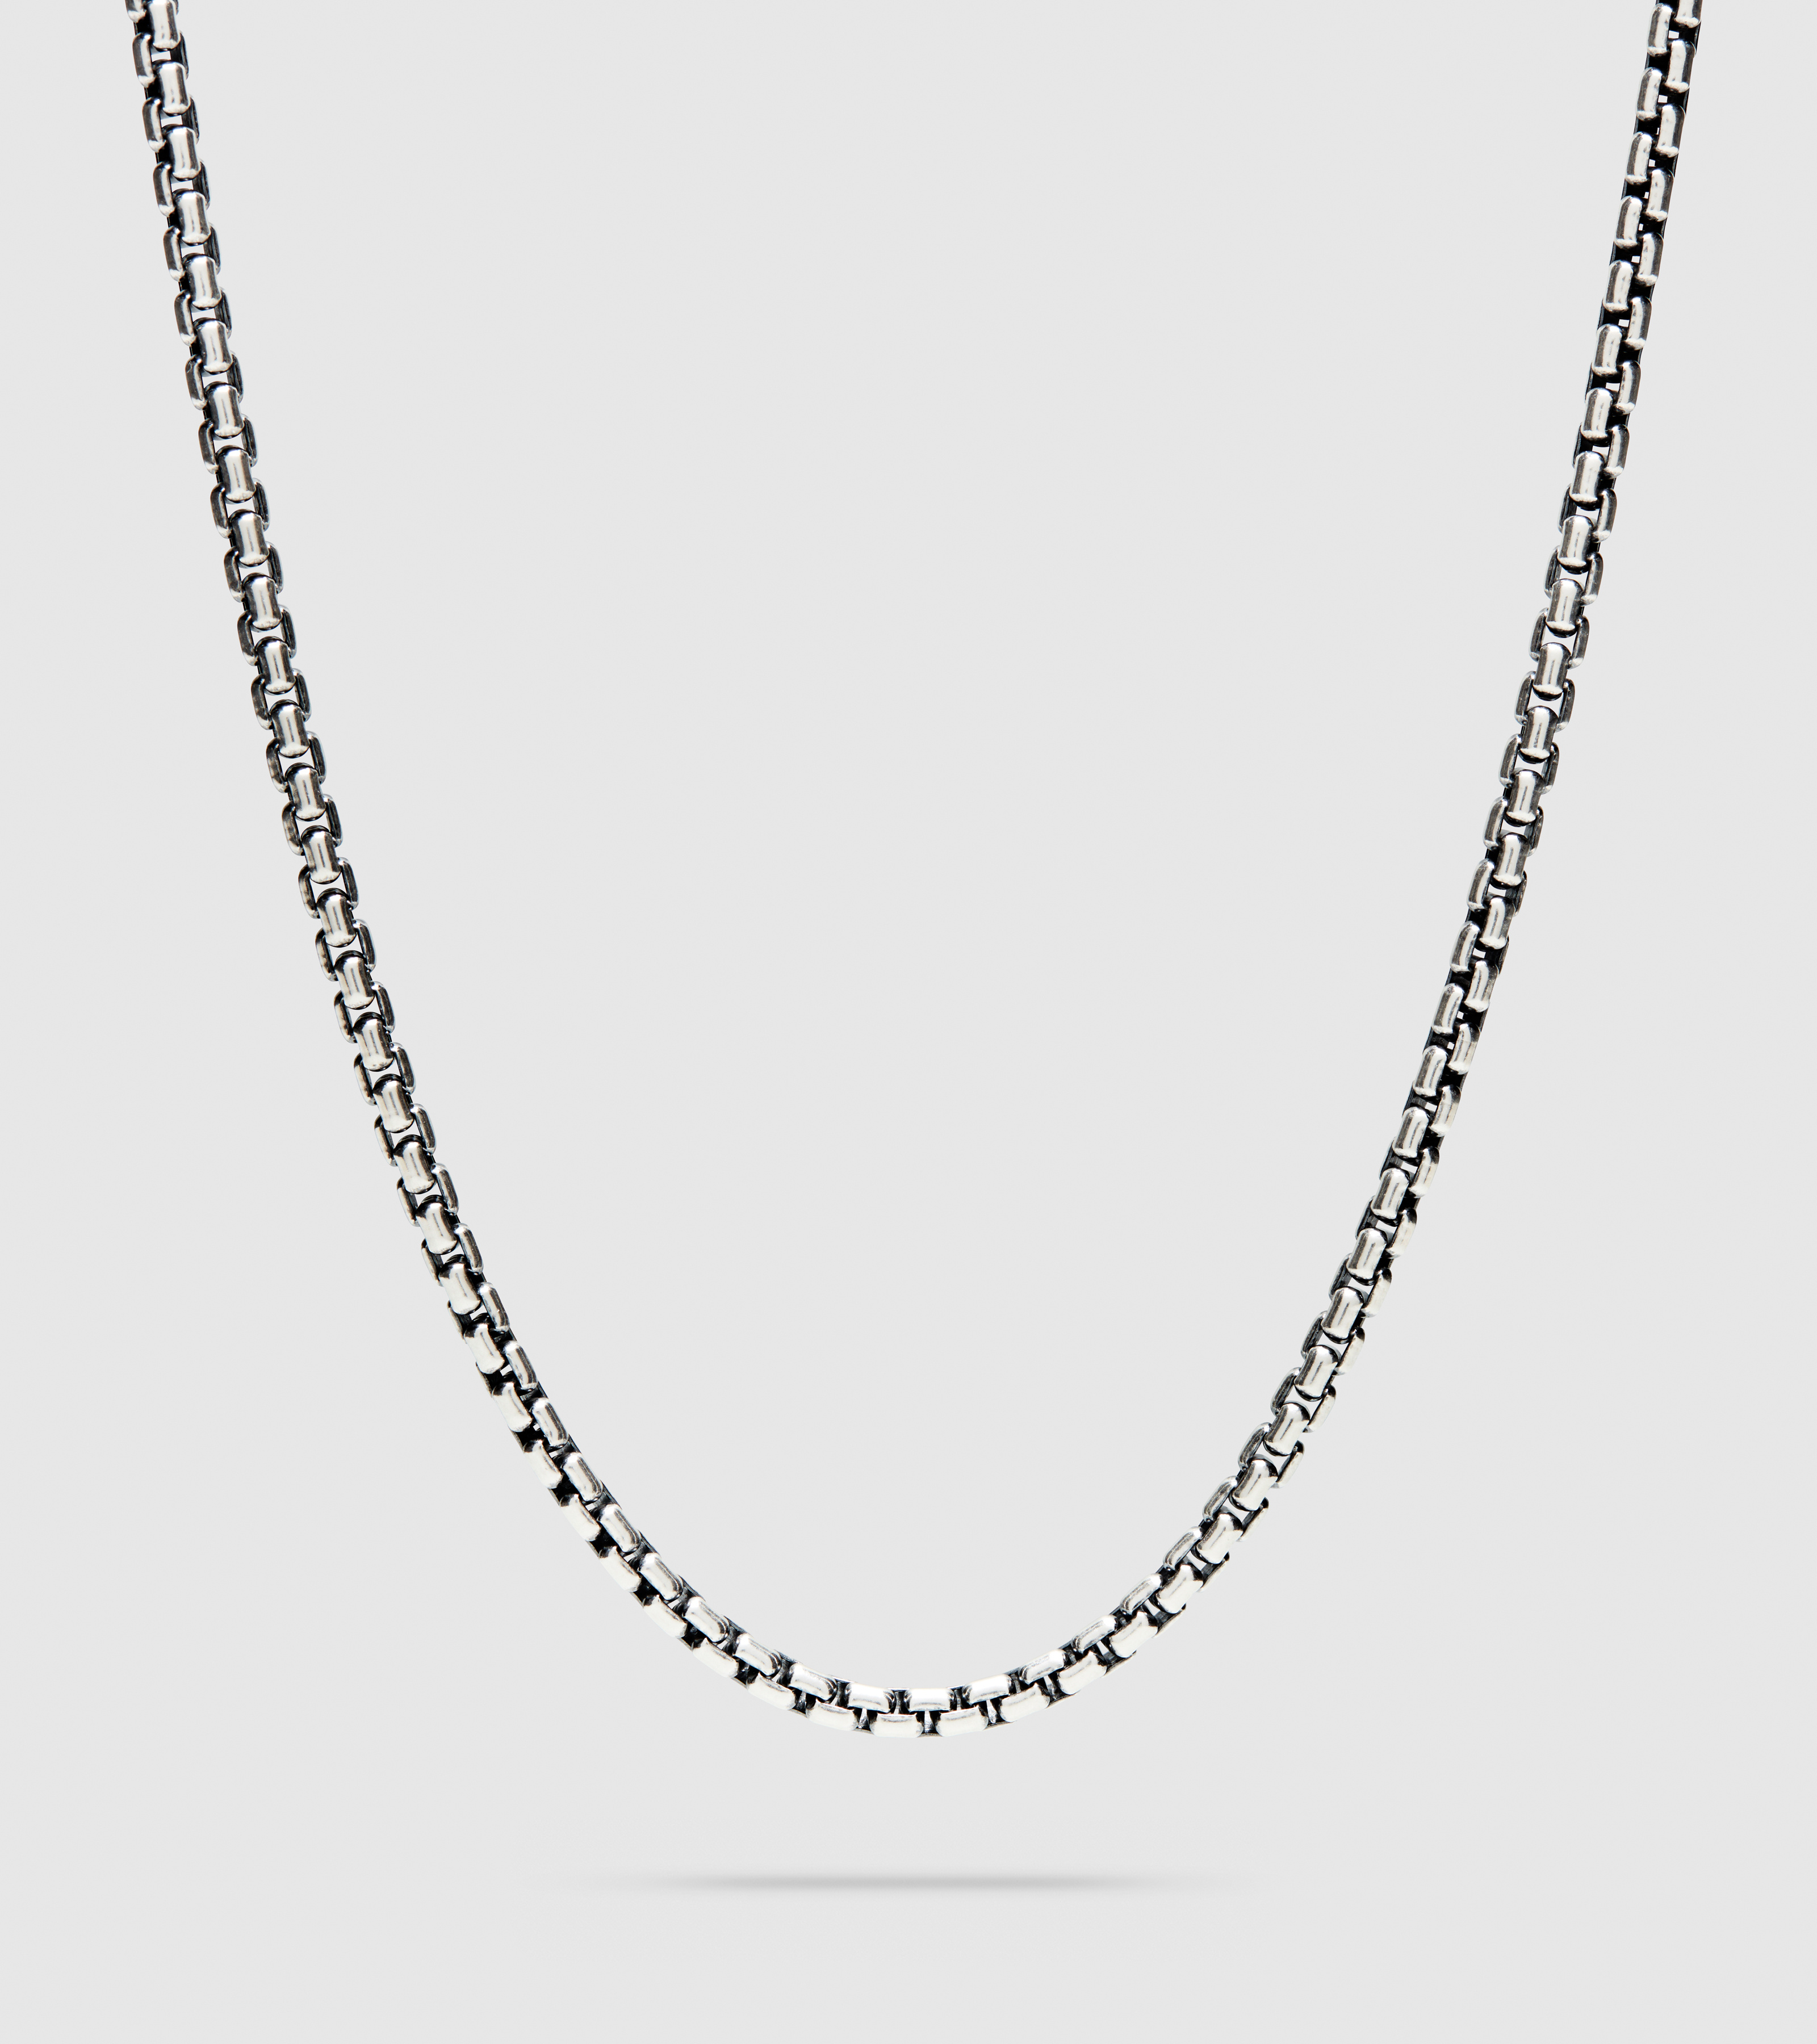 Venetian Chain Single L Black